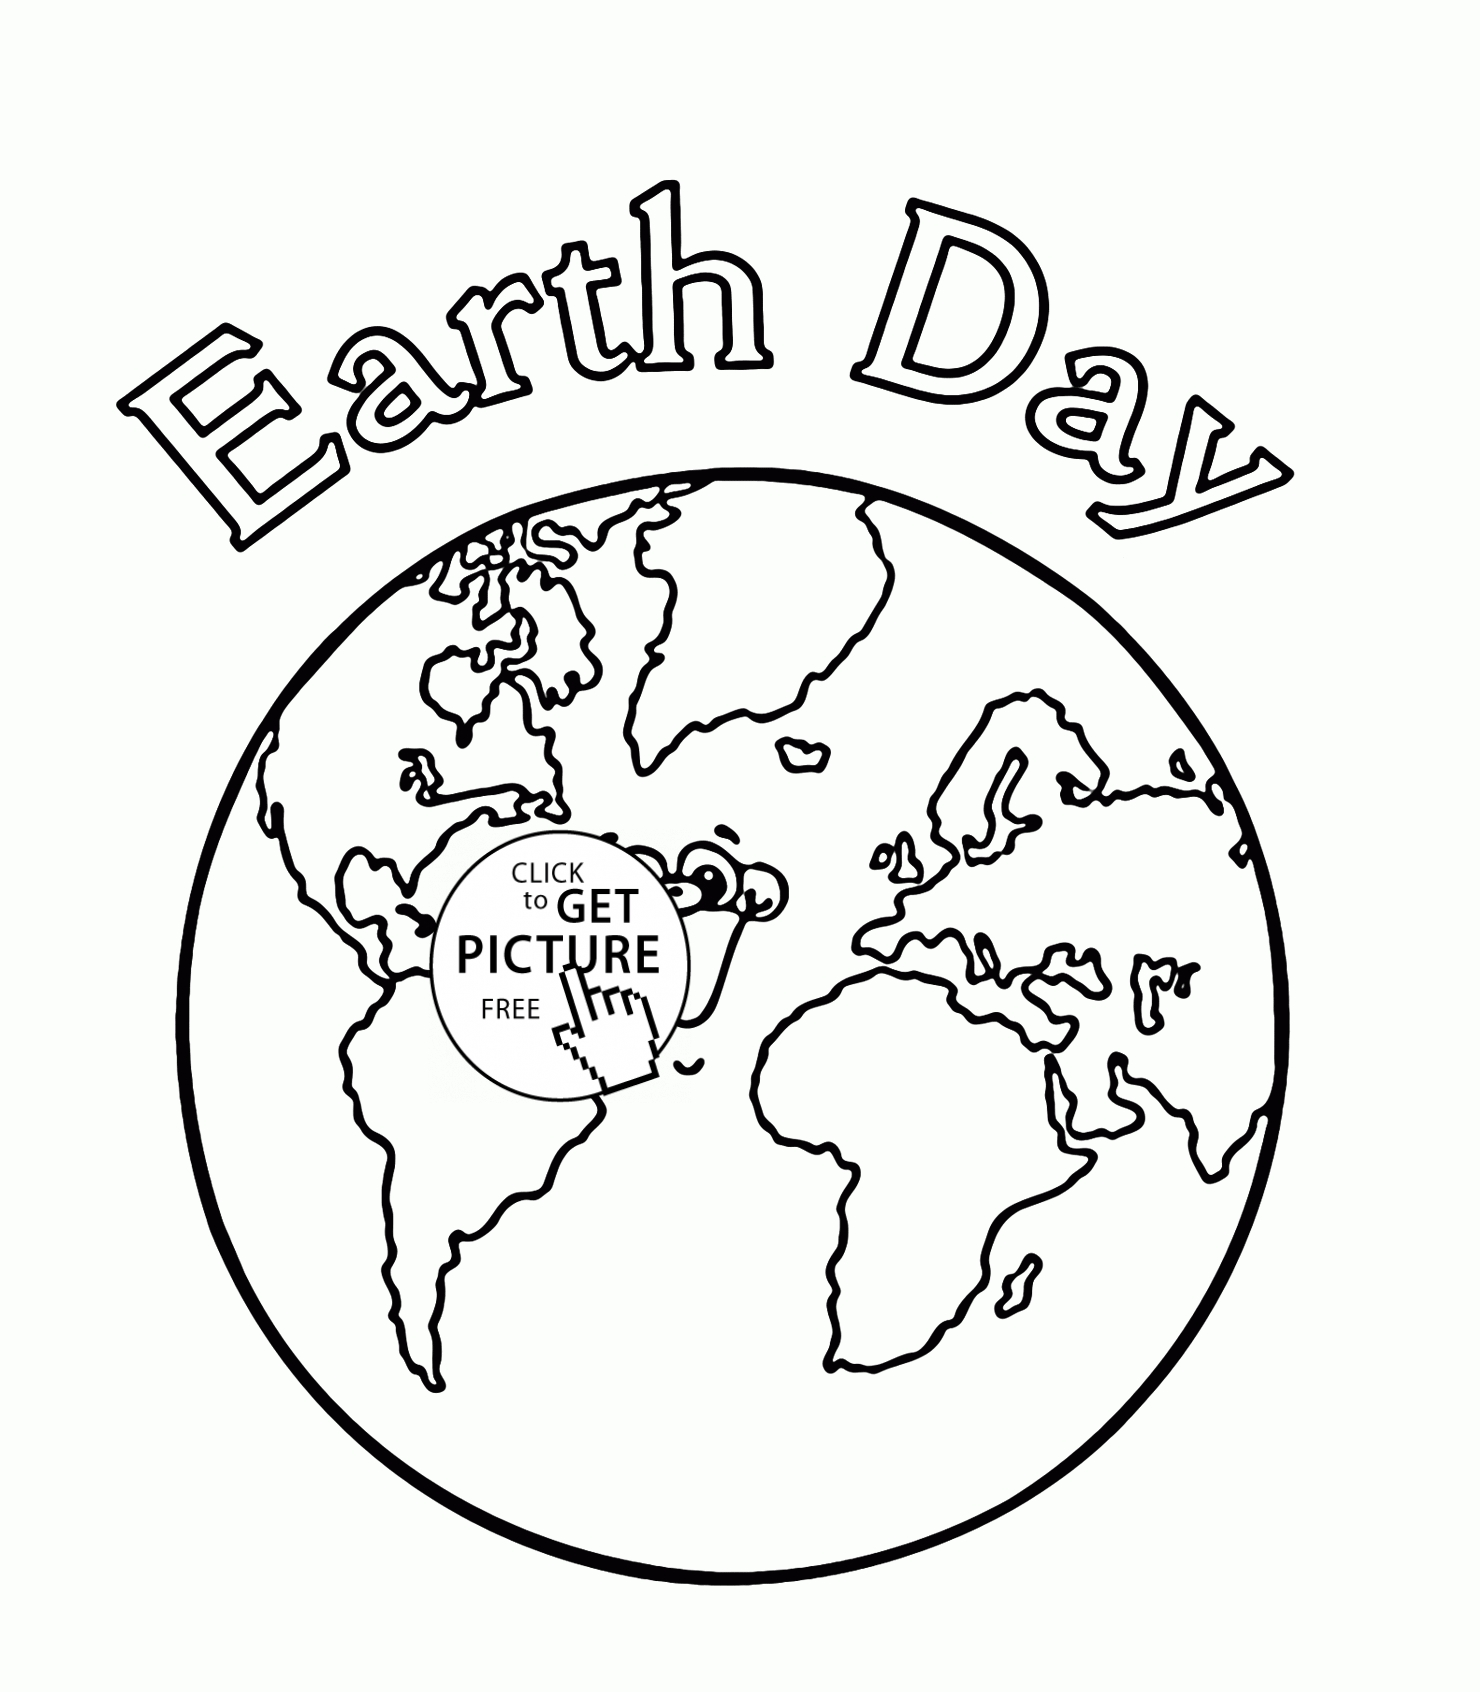 25 Earth Day Coloring Pages Pictures | FREE COLORING PAGES - Part 2